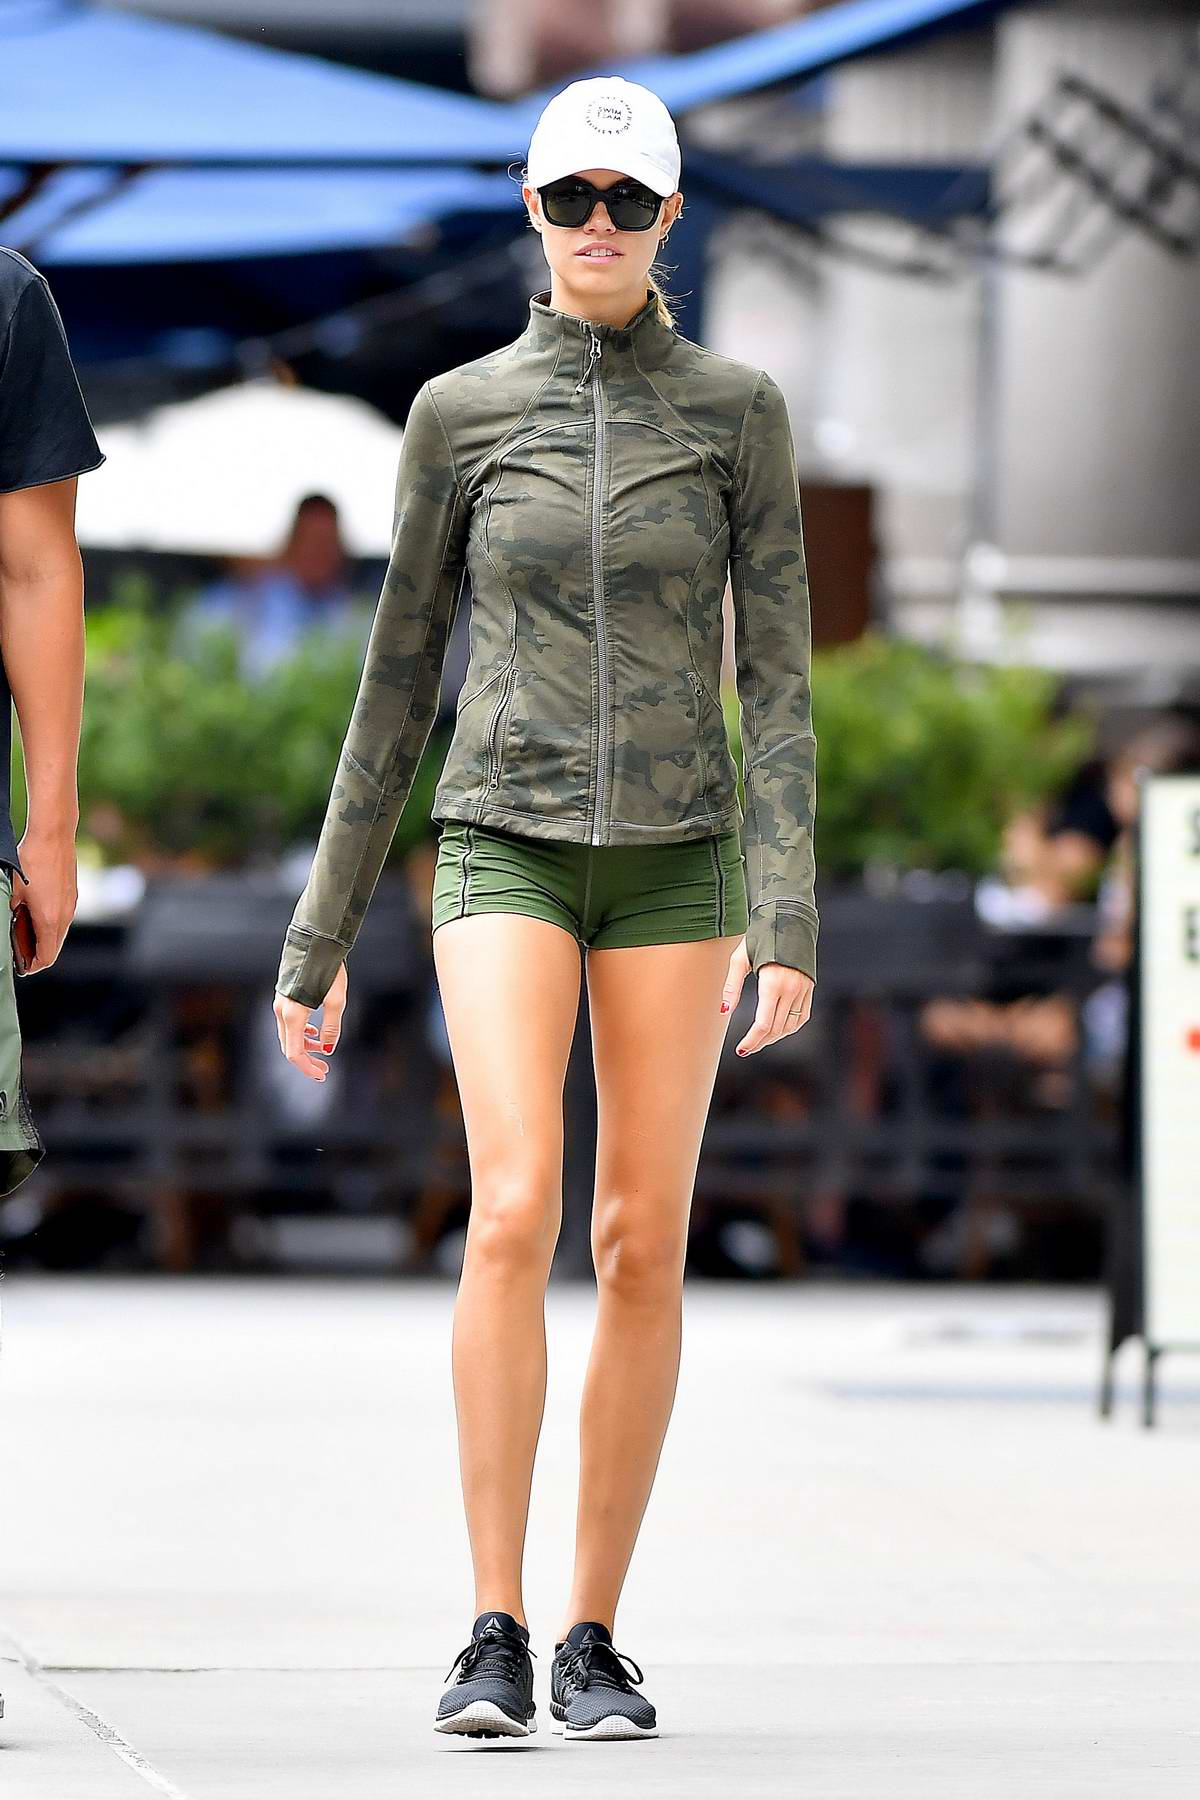 Hailey Clauson spotted in a camo jacket and short shorts while out with boyfriend Julien Harrera in New York City